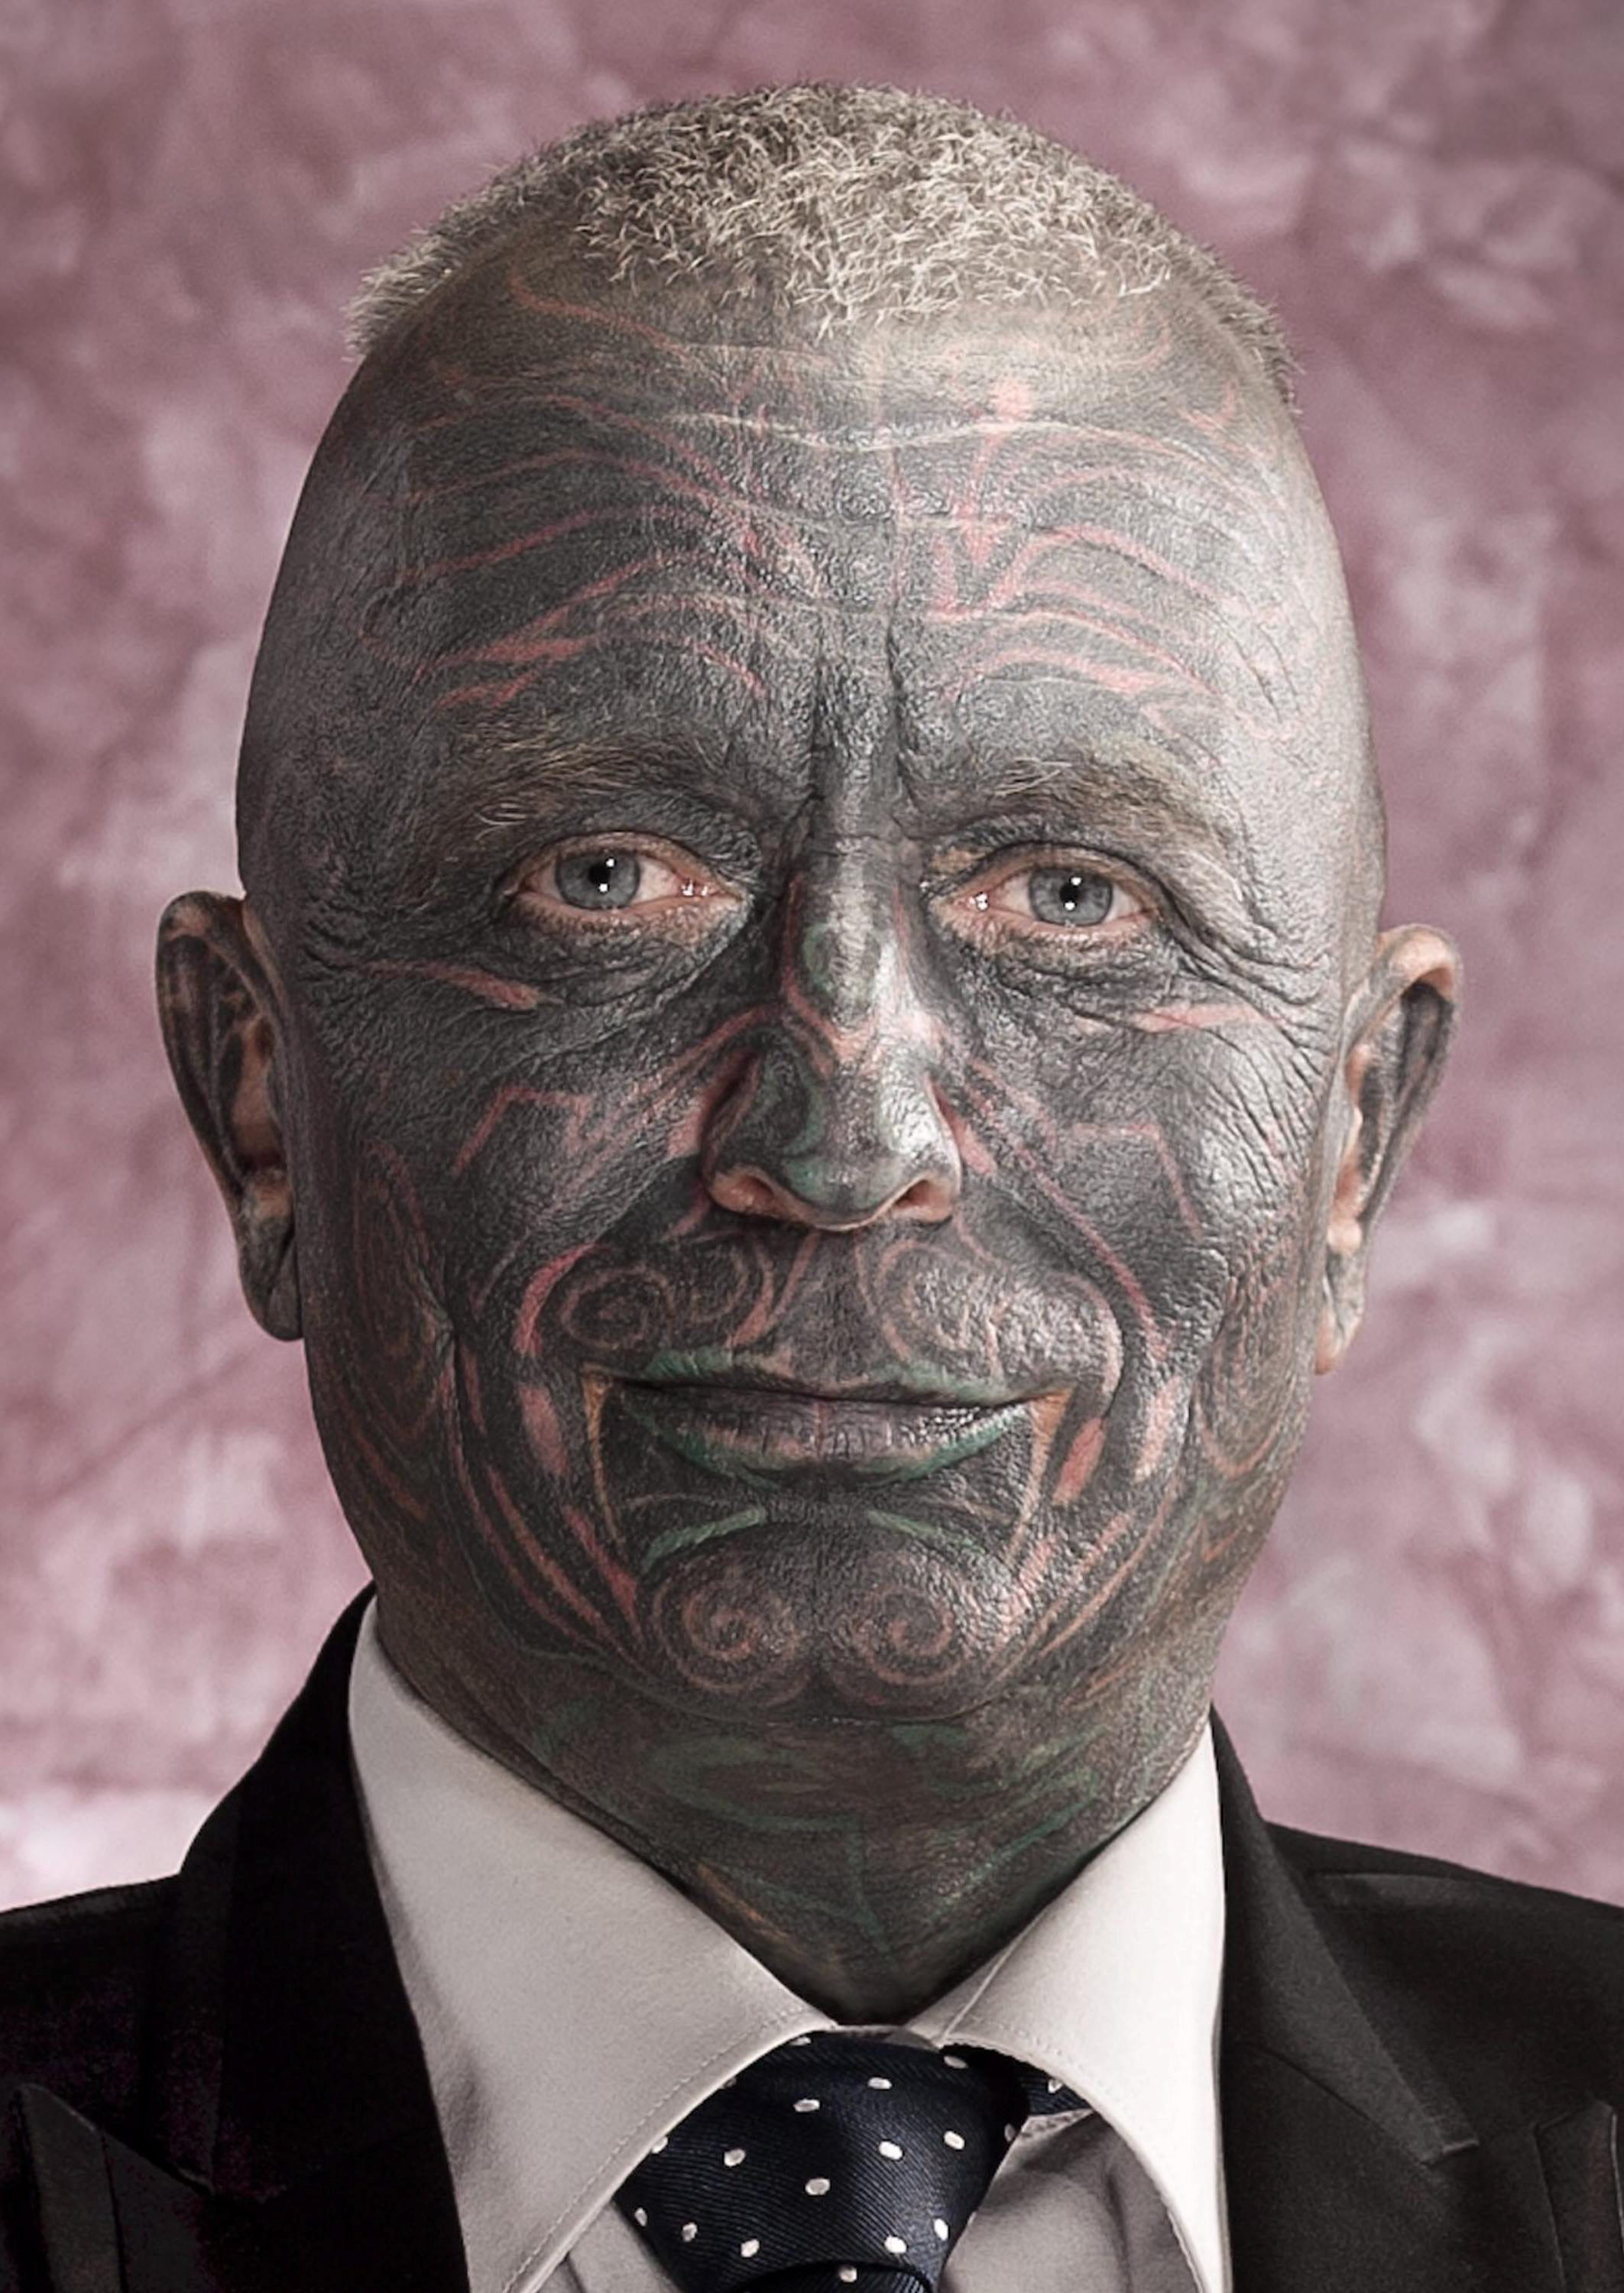 Vladimir Franz wants to become the world's first fully tattooed head of state